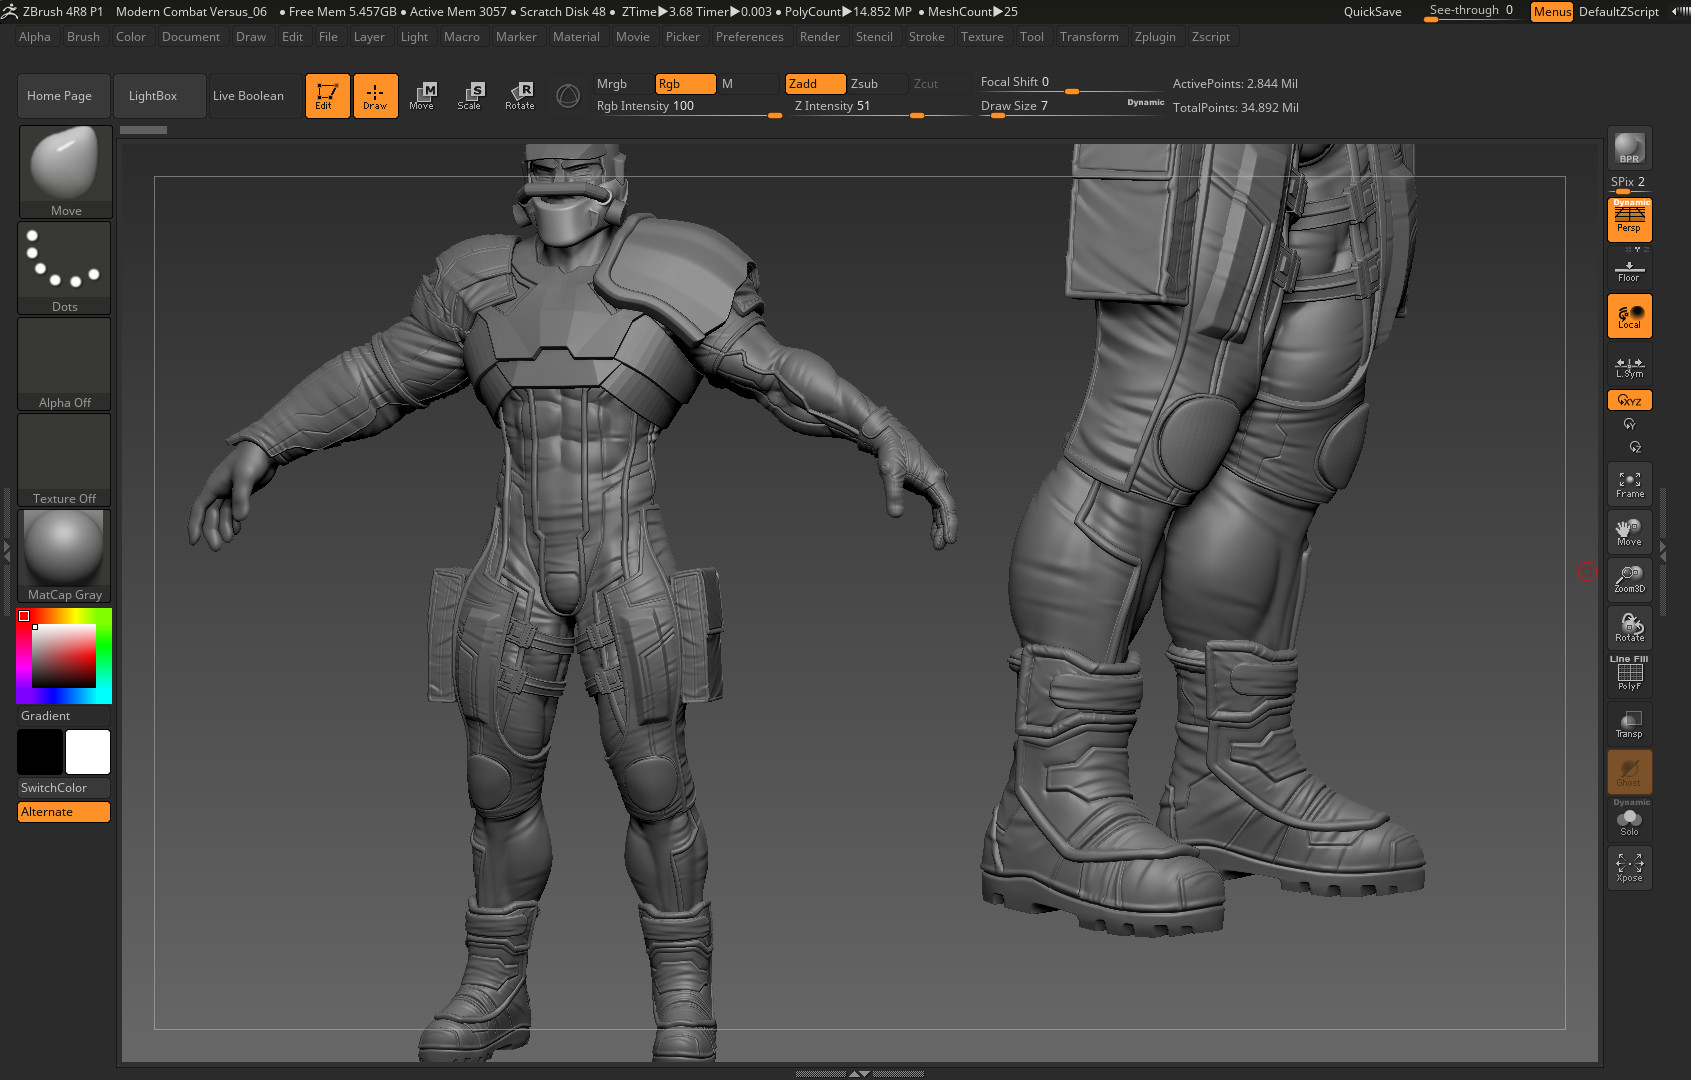 duc leanh - Train 3d character ( Wip 1 )